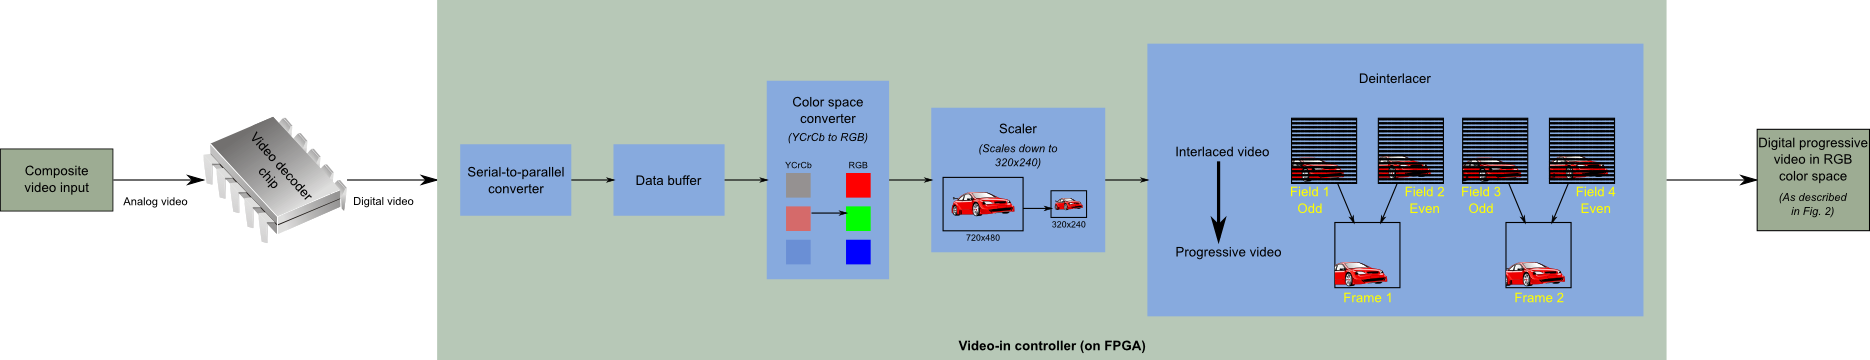 Video-in controller